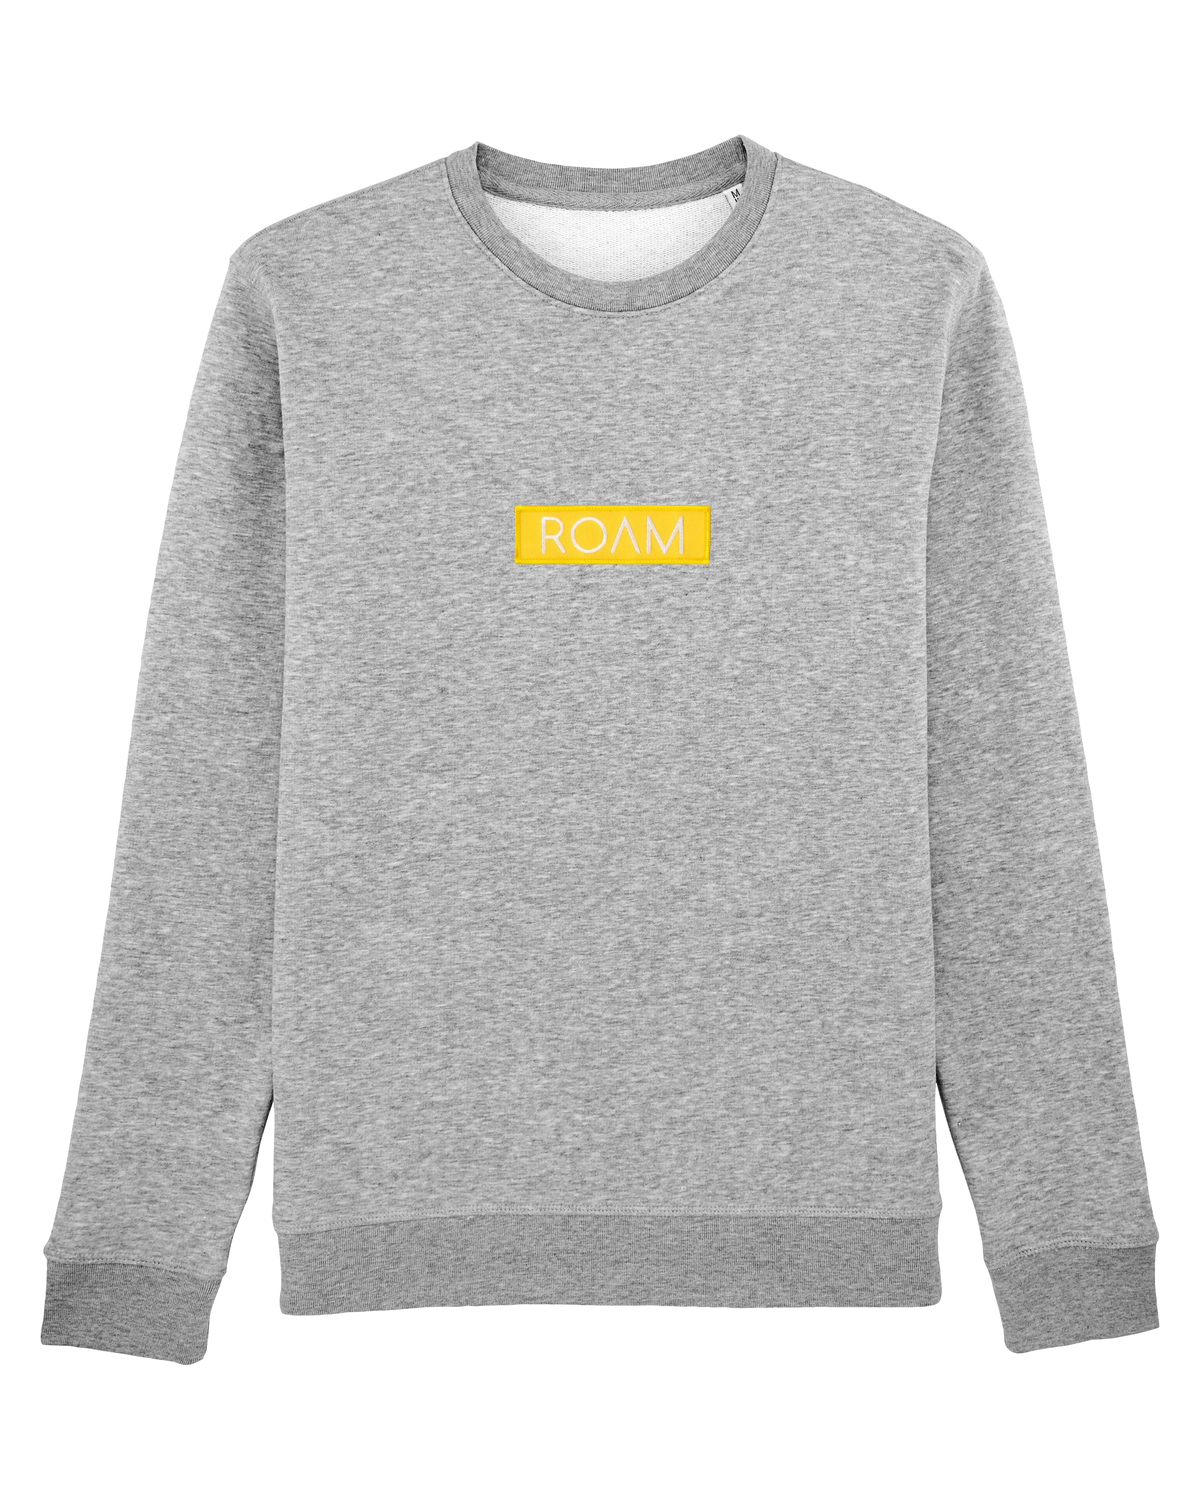 RTW Grey Box logo